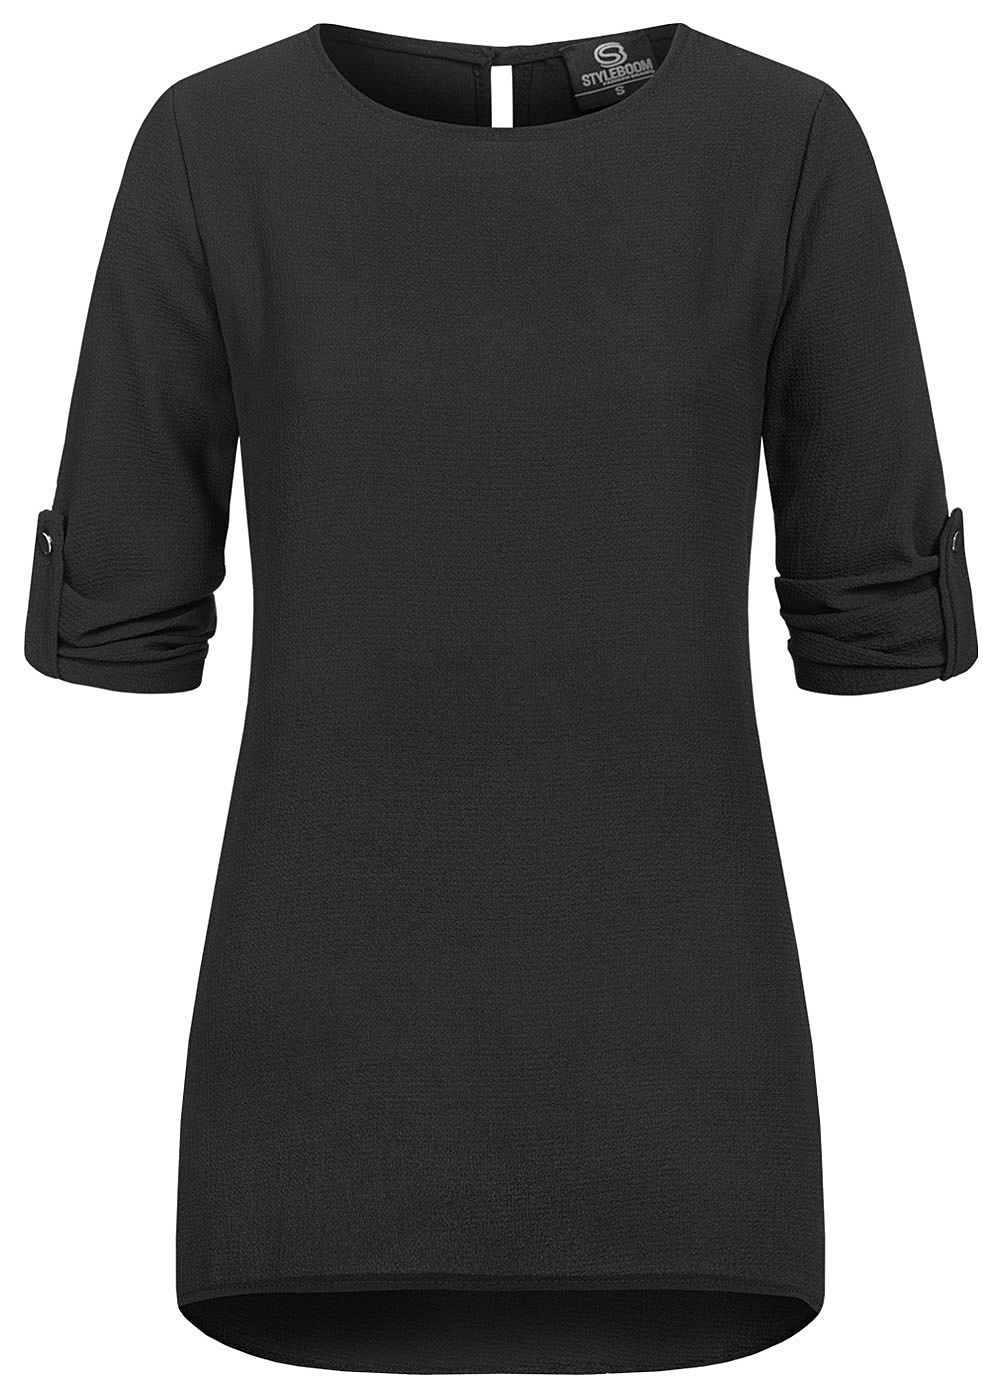 Styleboom Fashion Damen Turn-up Krepp Longform Bluse Vokuhila schwarz - Art.-Nr.: 20086338